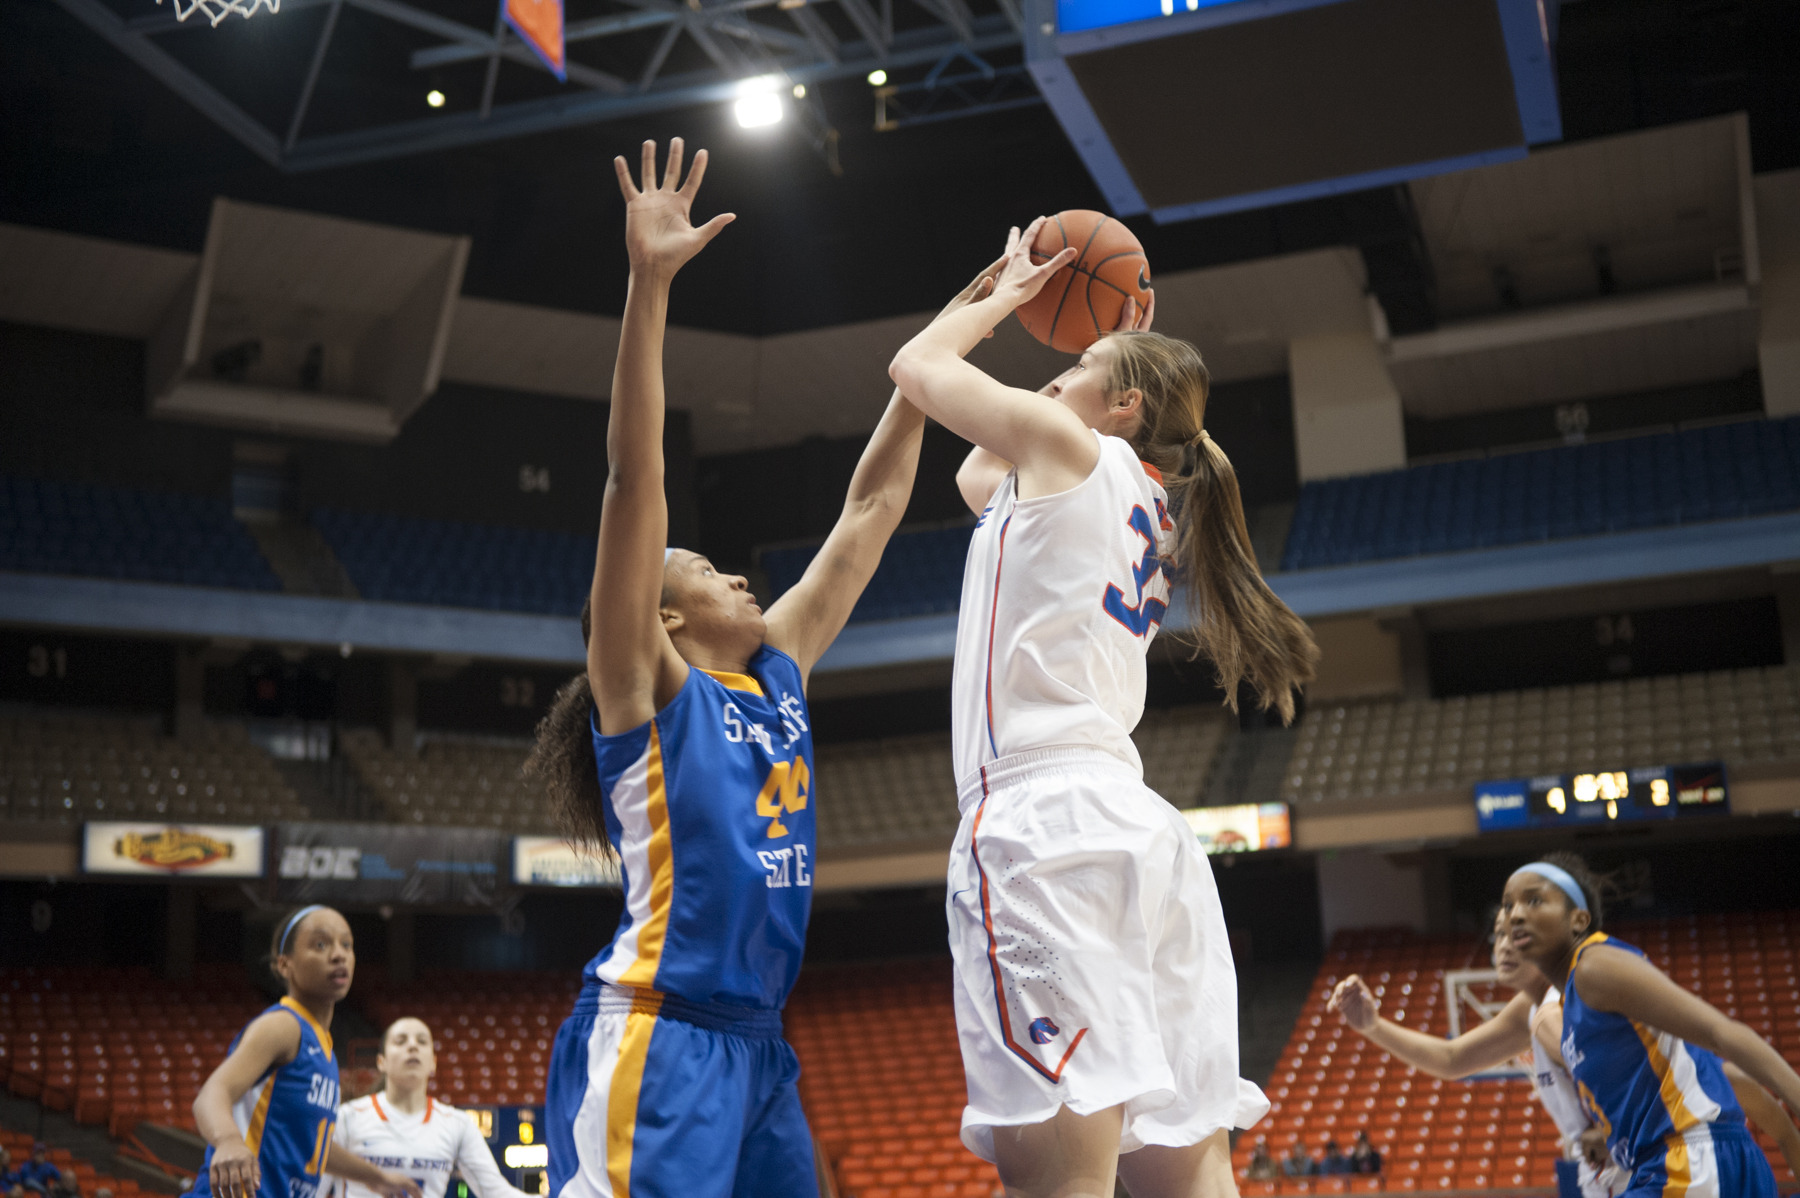 Miquelle Askew recorded a double-double in the win.